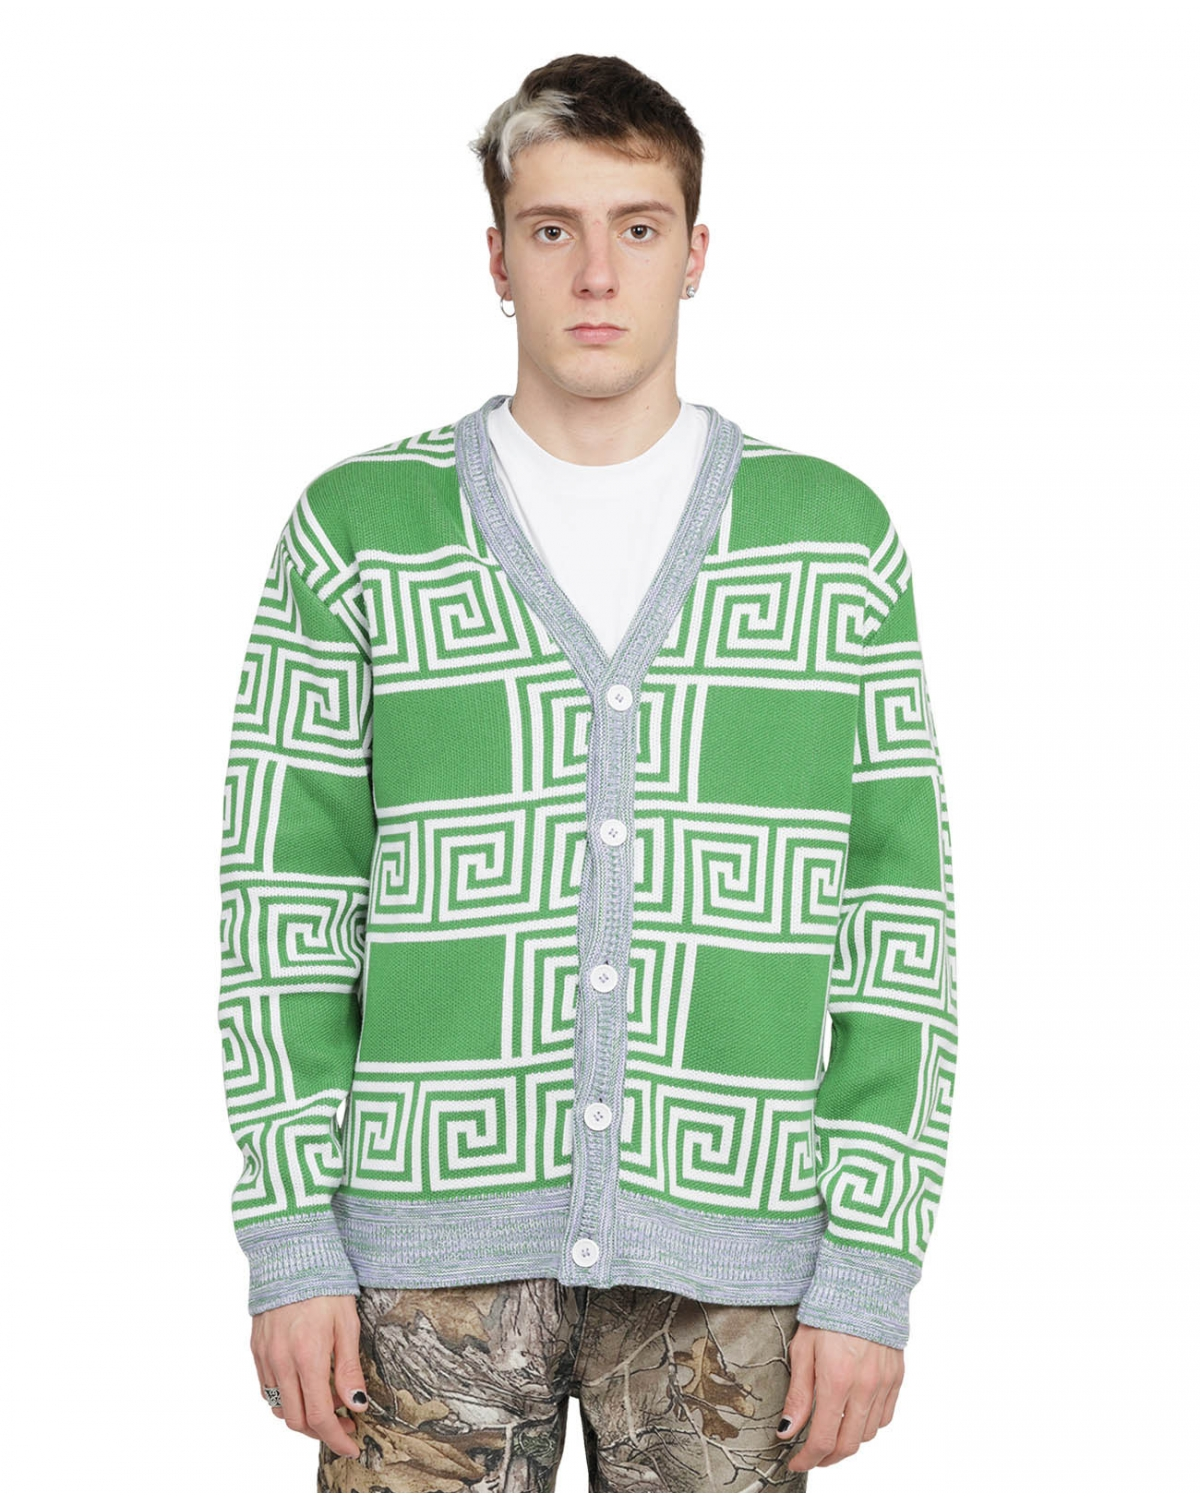 Lifesux green Greek cardigan